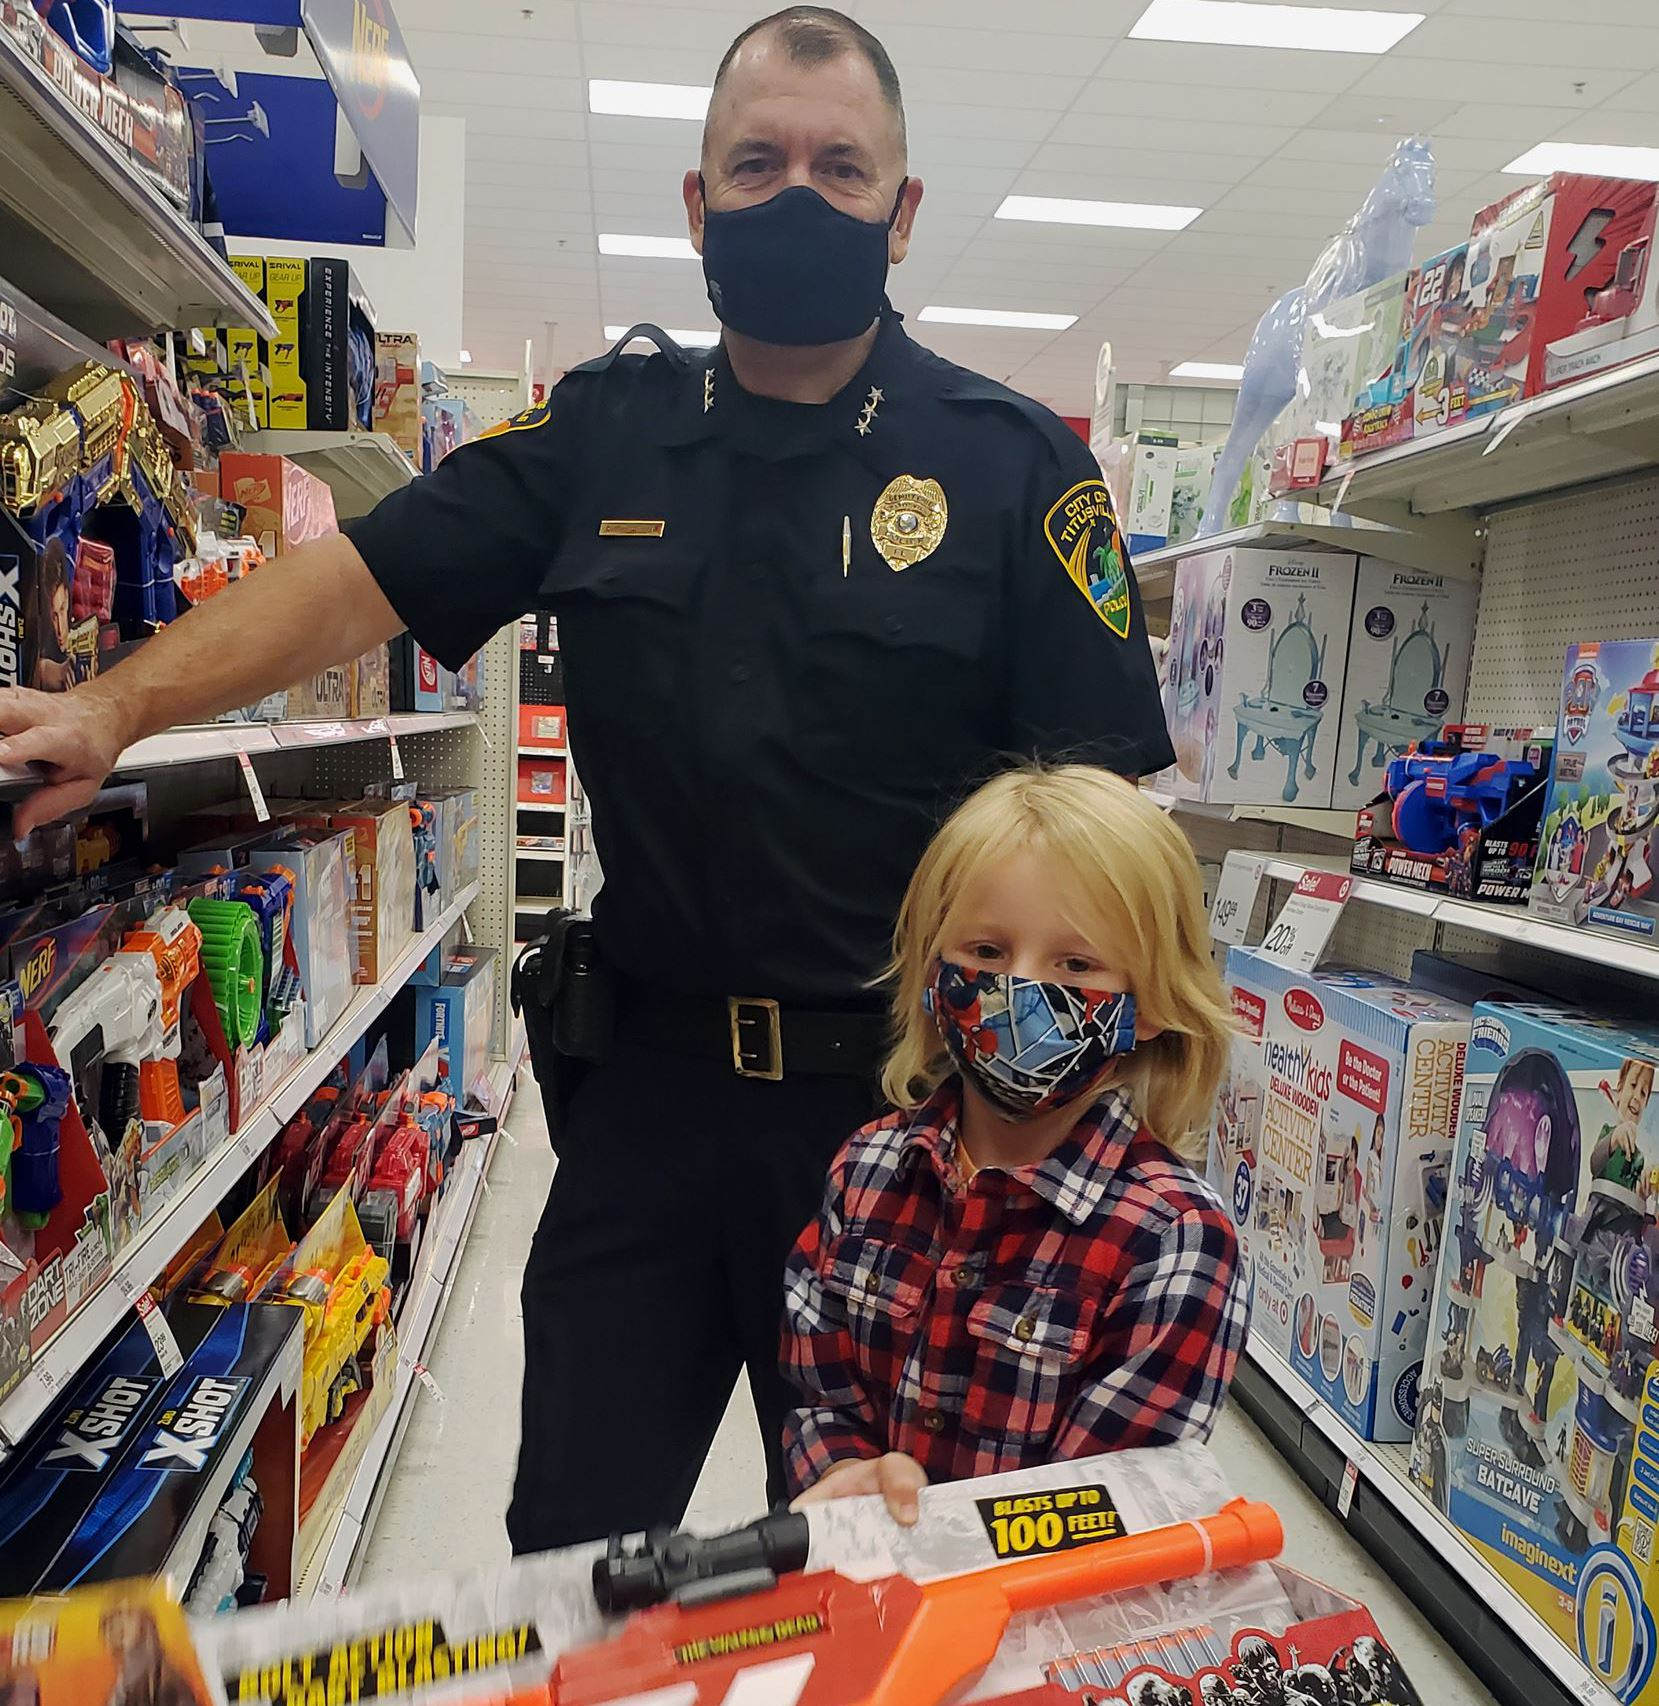 TPD Officer at Shop with a Cop event